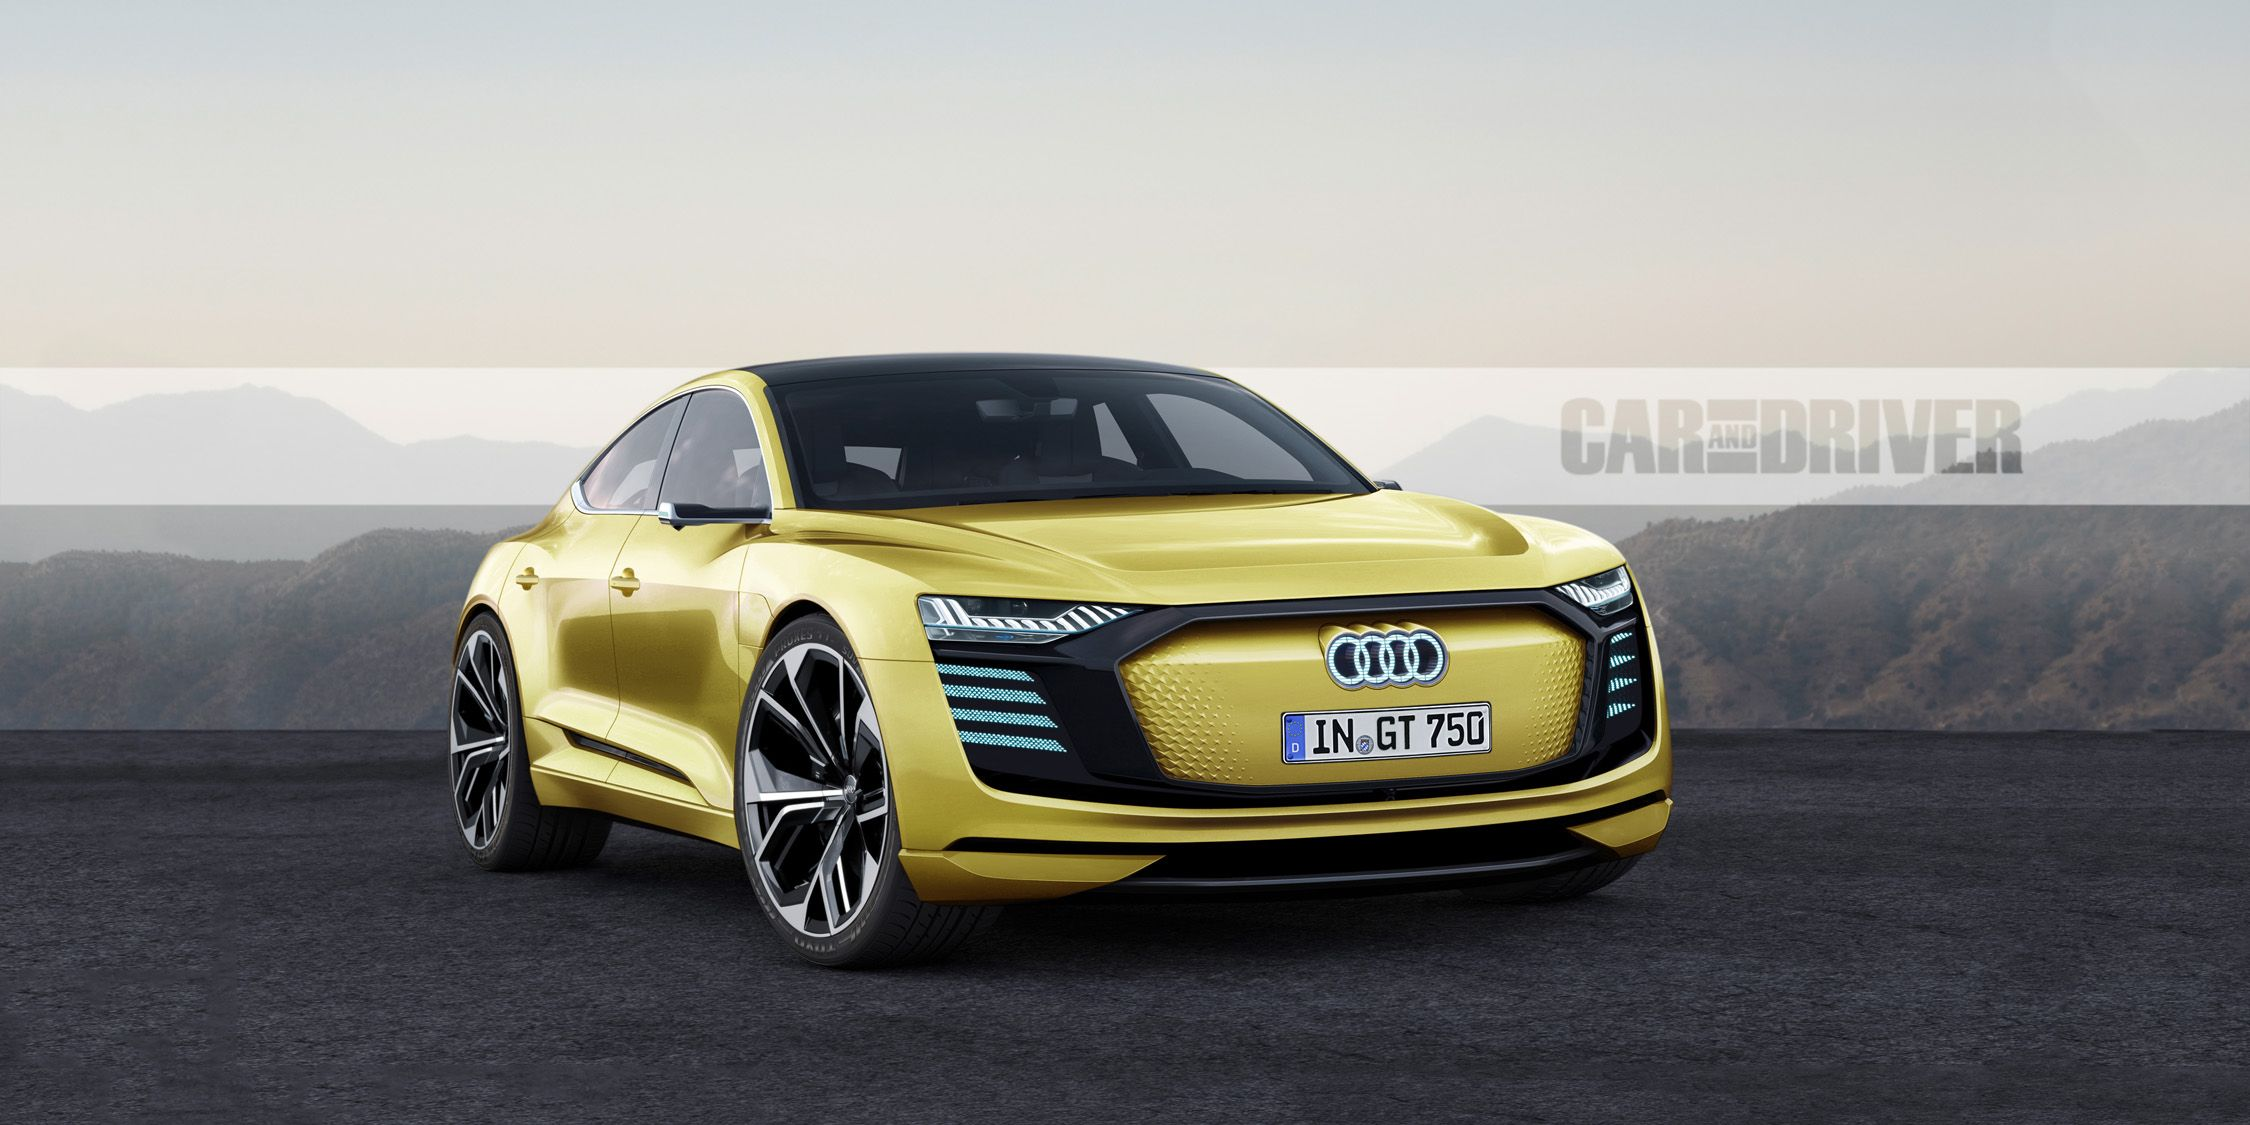 2021 Audi E Tron Gt What We Know About The Porsche Based Sports Car